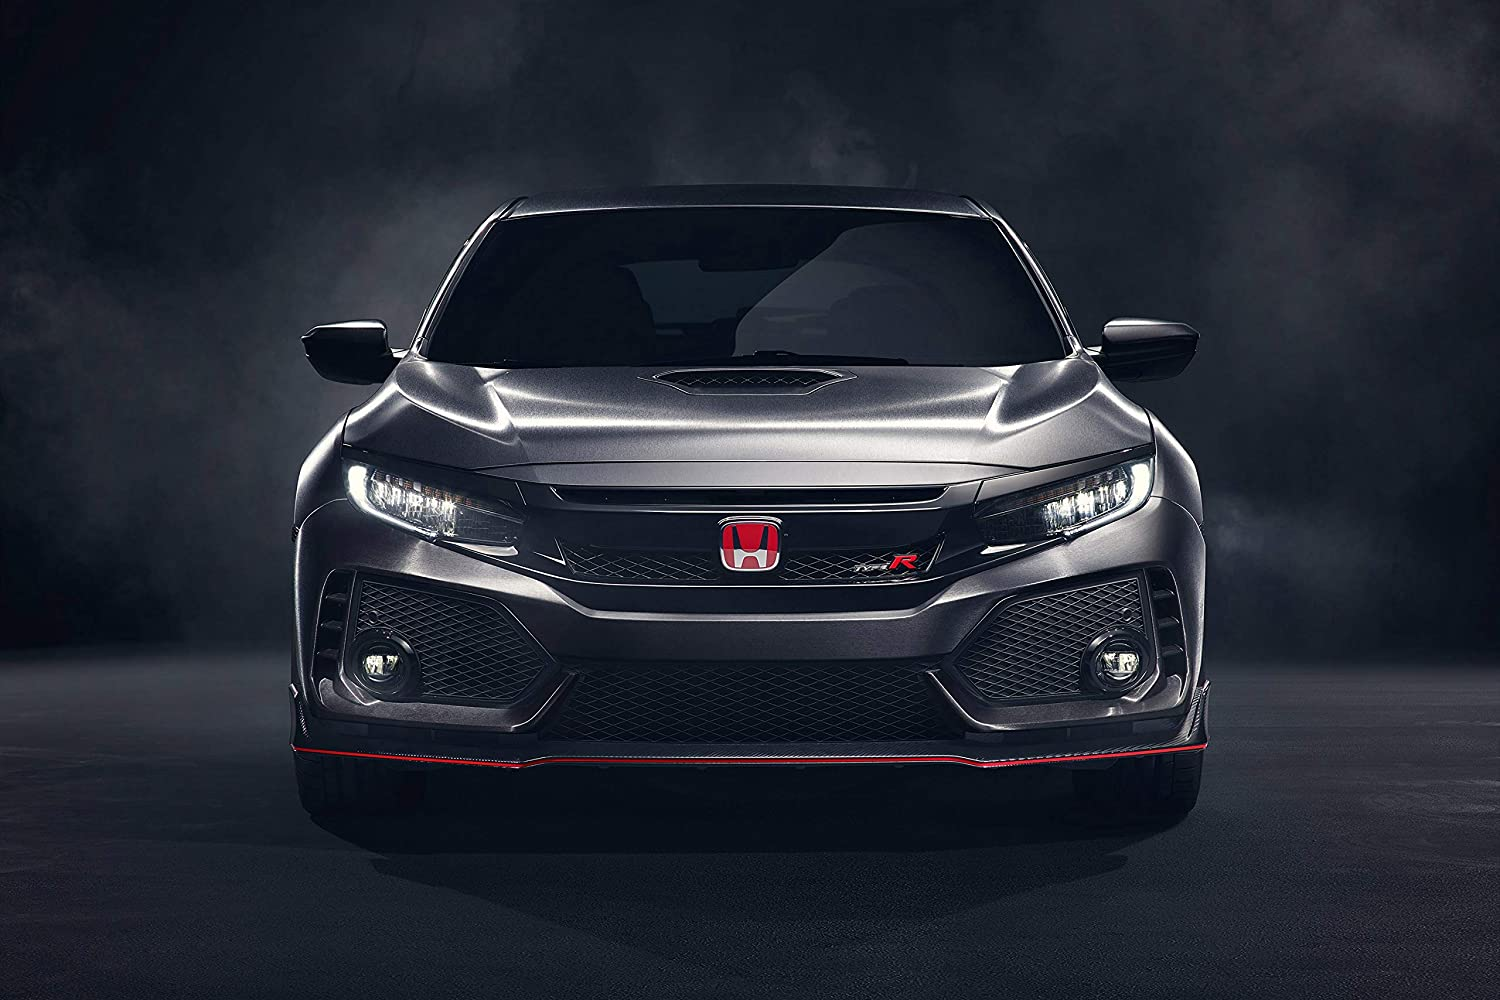 Black Creations Honda Civic type r 2 Sport Car Poster Canvas Picture Art Print Premium Quality A0 A1 A2 A3 A4 (A0 Canvas (30 40))